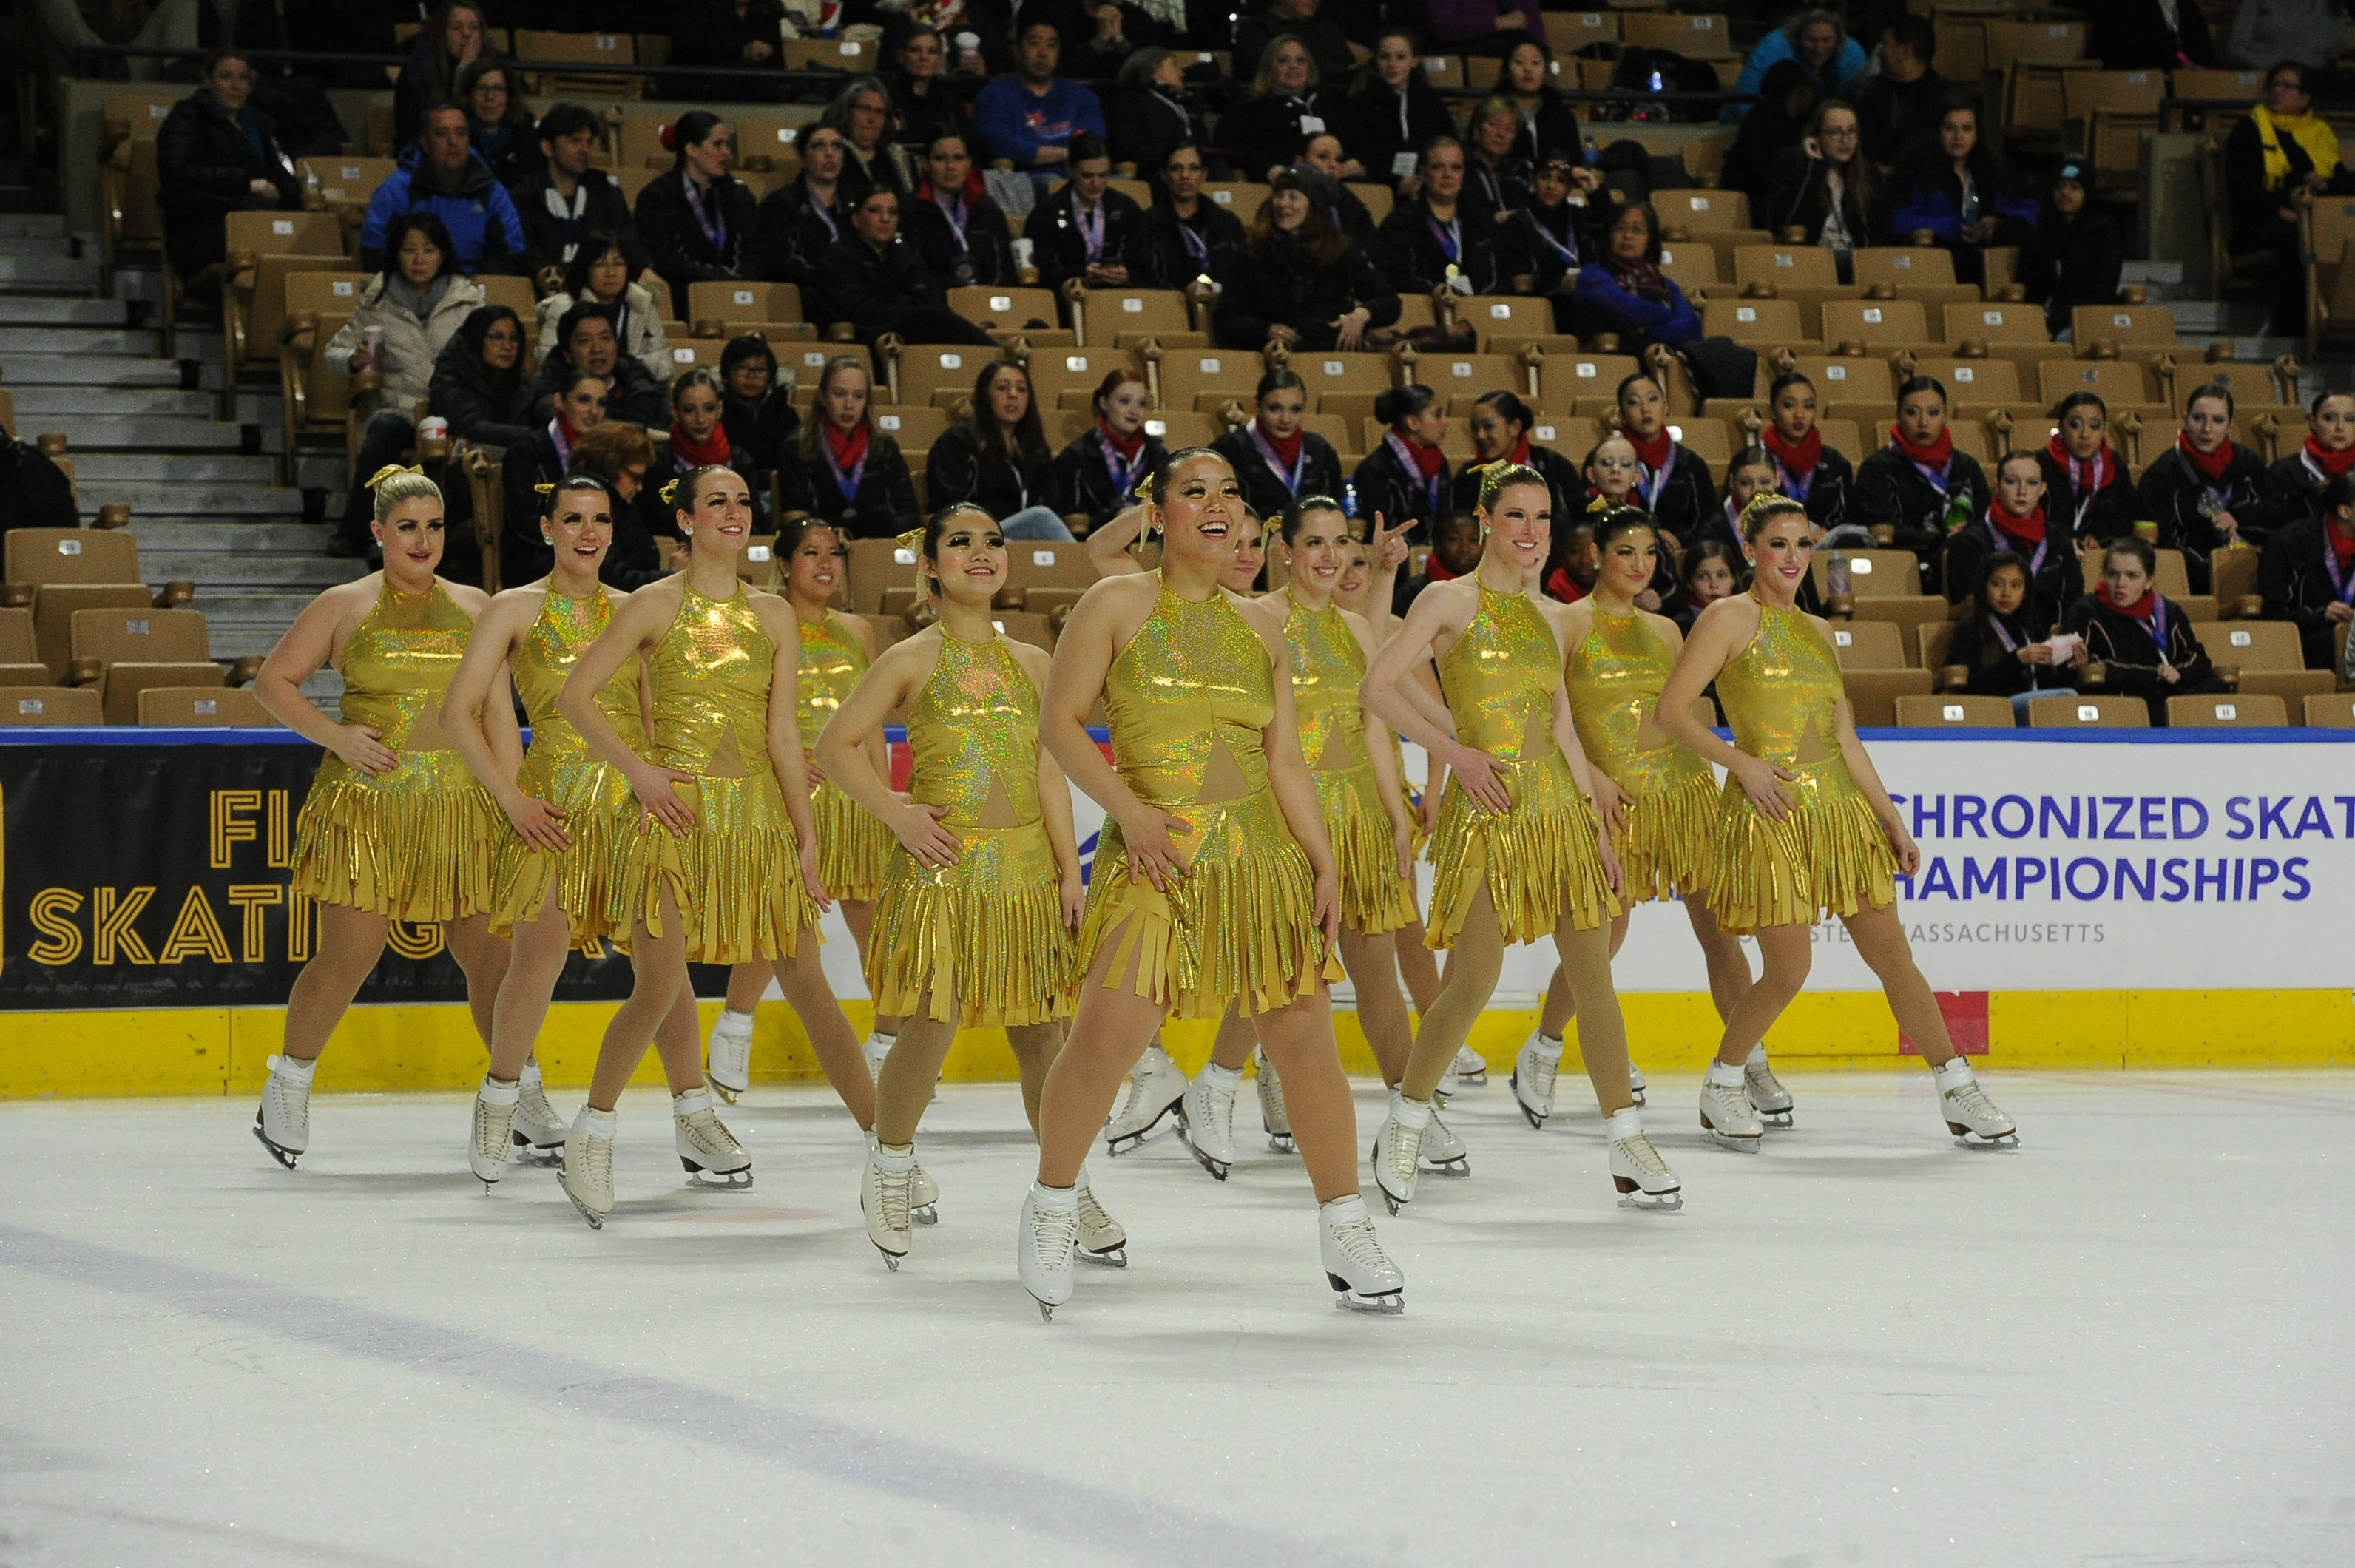 Gotham City Synchro custom synchronized skating dresses